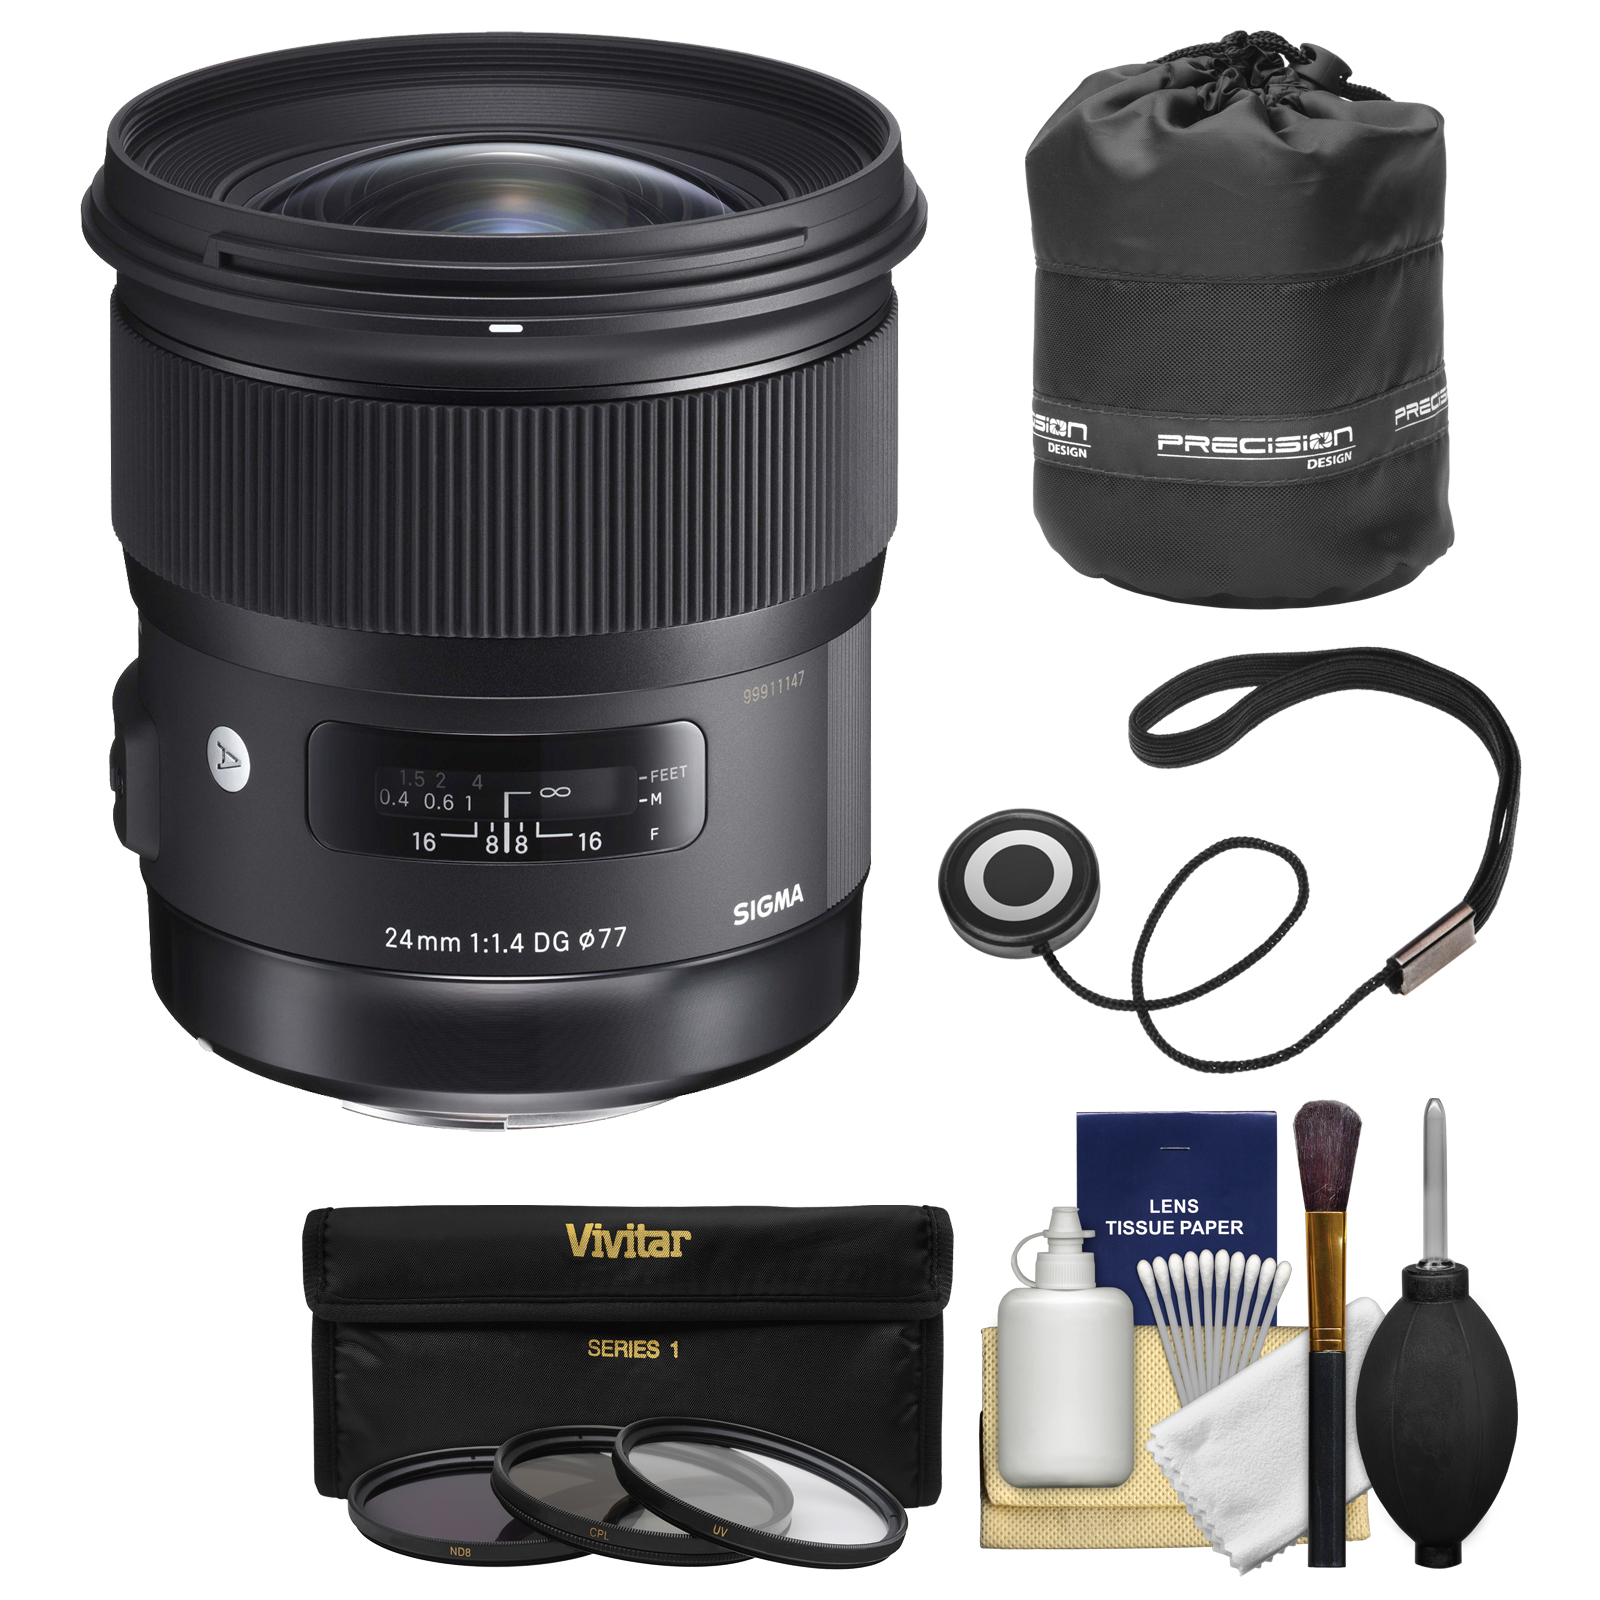 Sigma 24mm f/1.4 Art DG HSM Lens for Canon EOS DSLR Cameras with Pouch + 3 UV/CPL/ND8 Filters + Kit